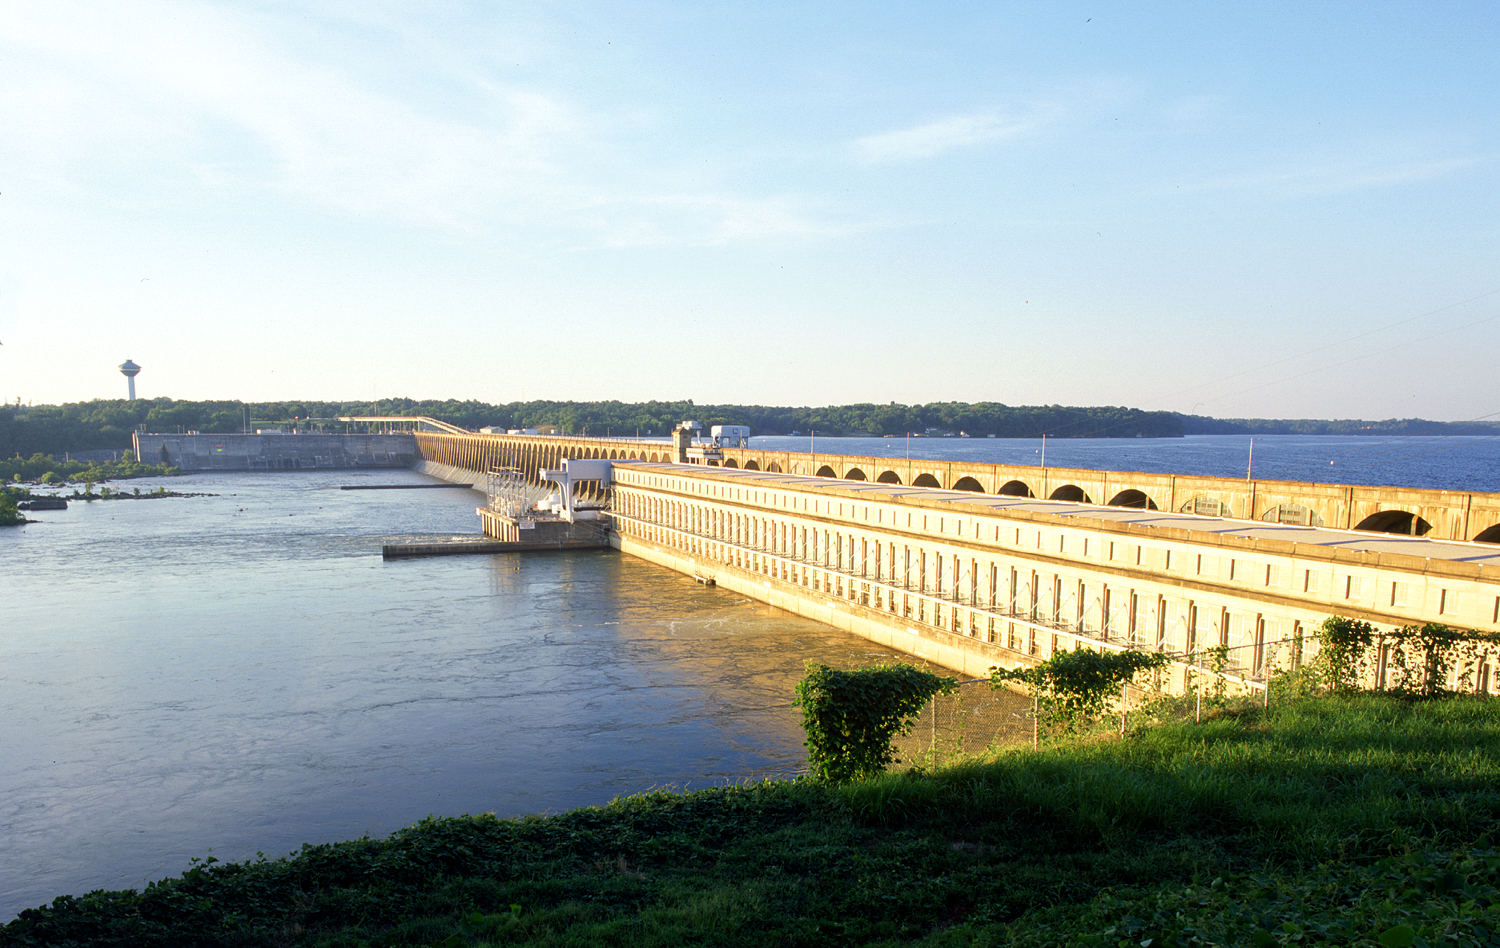 A broad view of the Wilson Dam